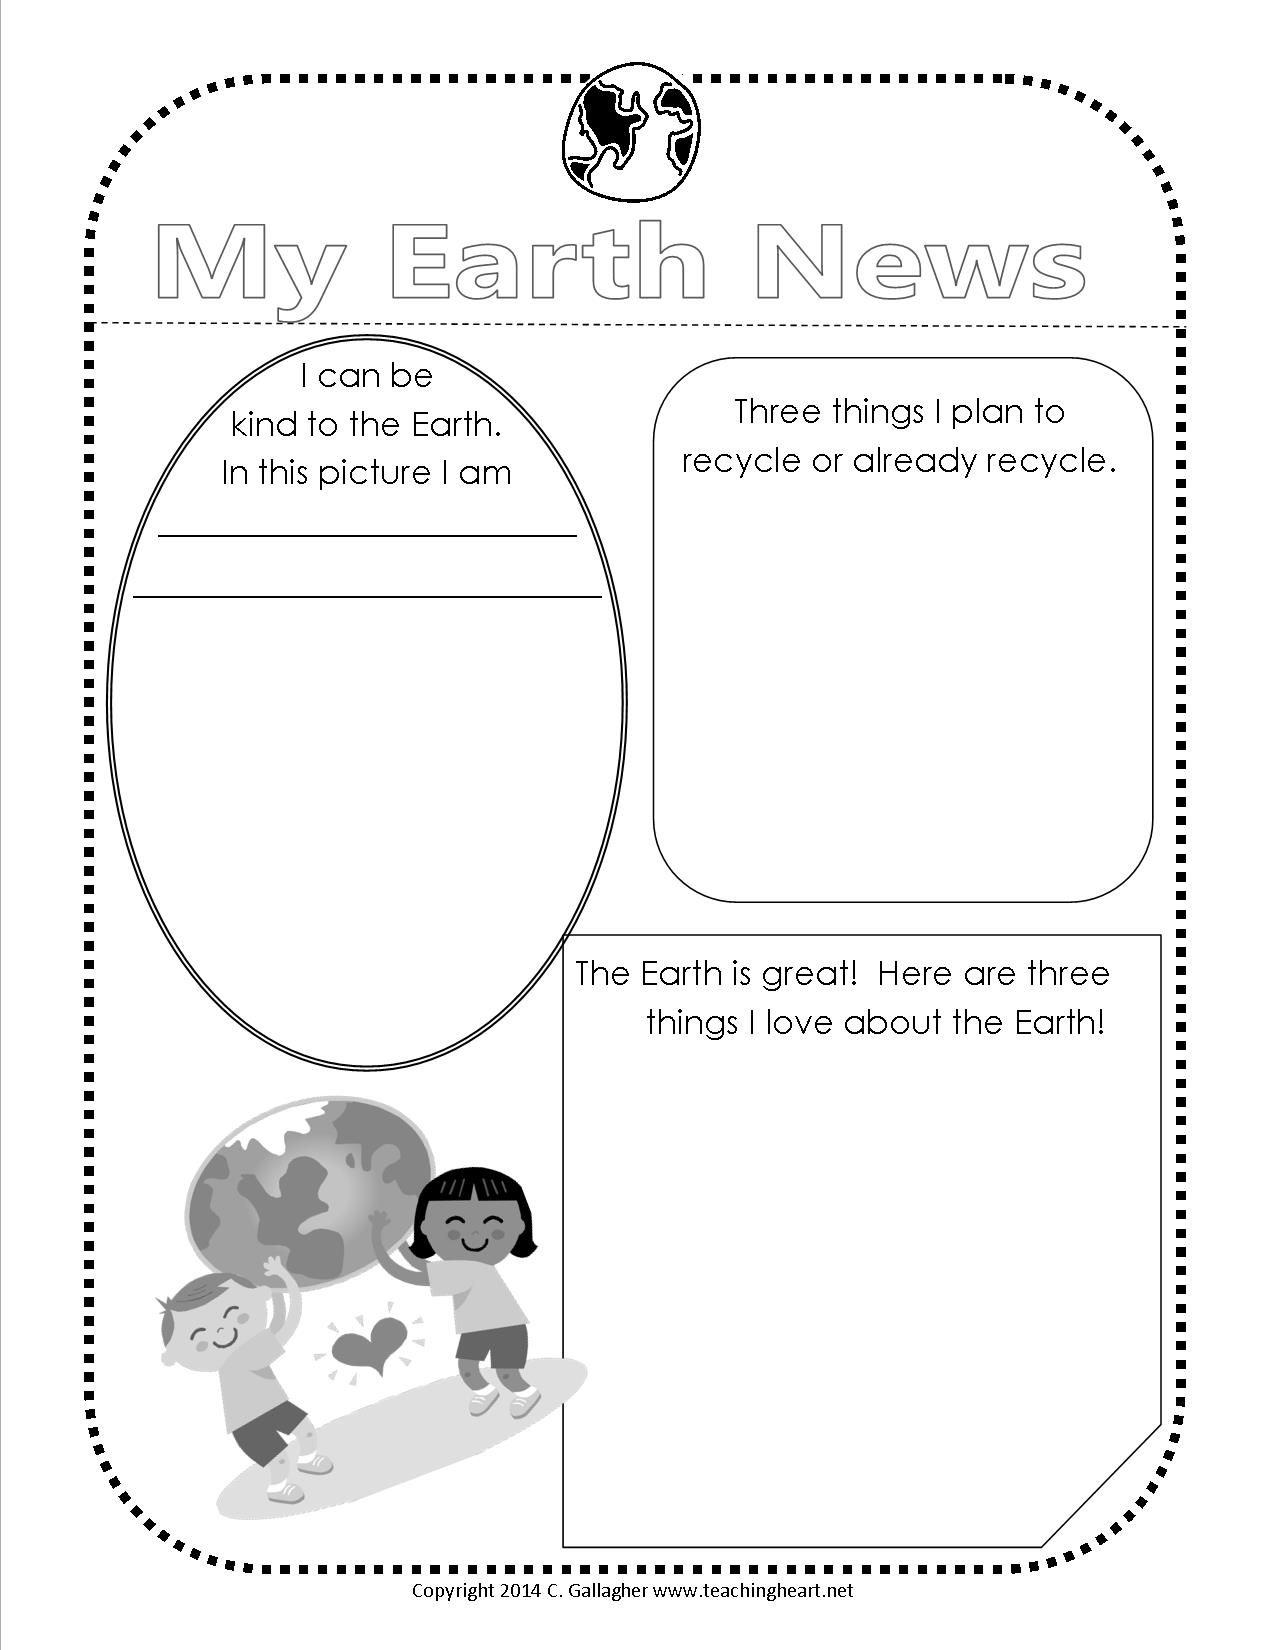 worksheet Free Earth Day Worksheets earth day 2014 free printable and teaching heart blog